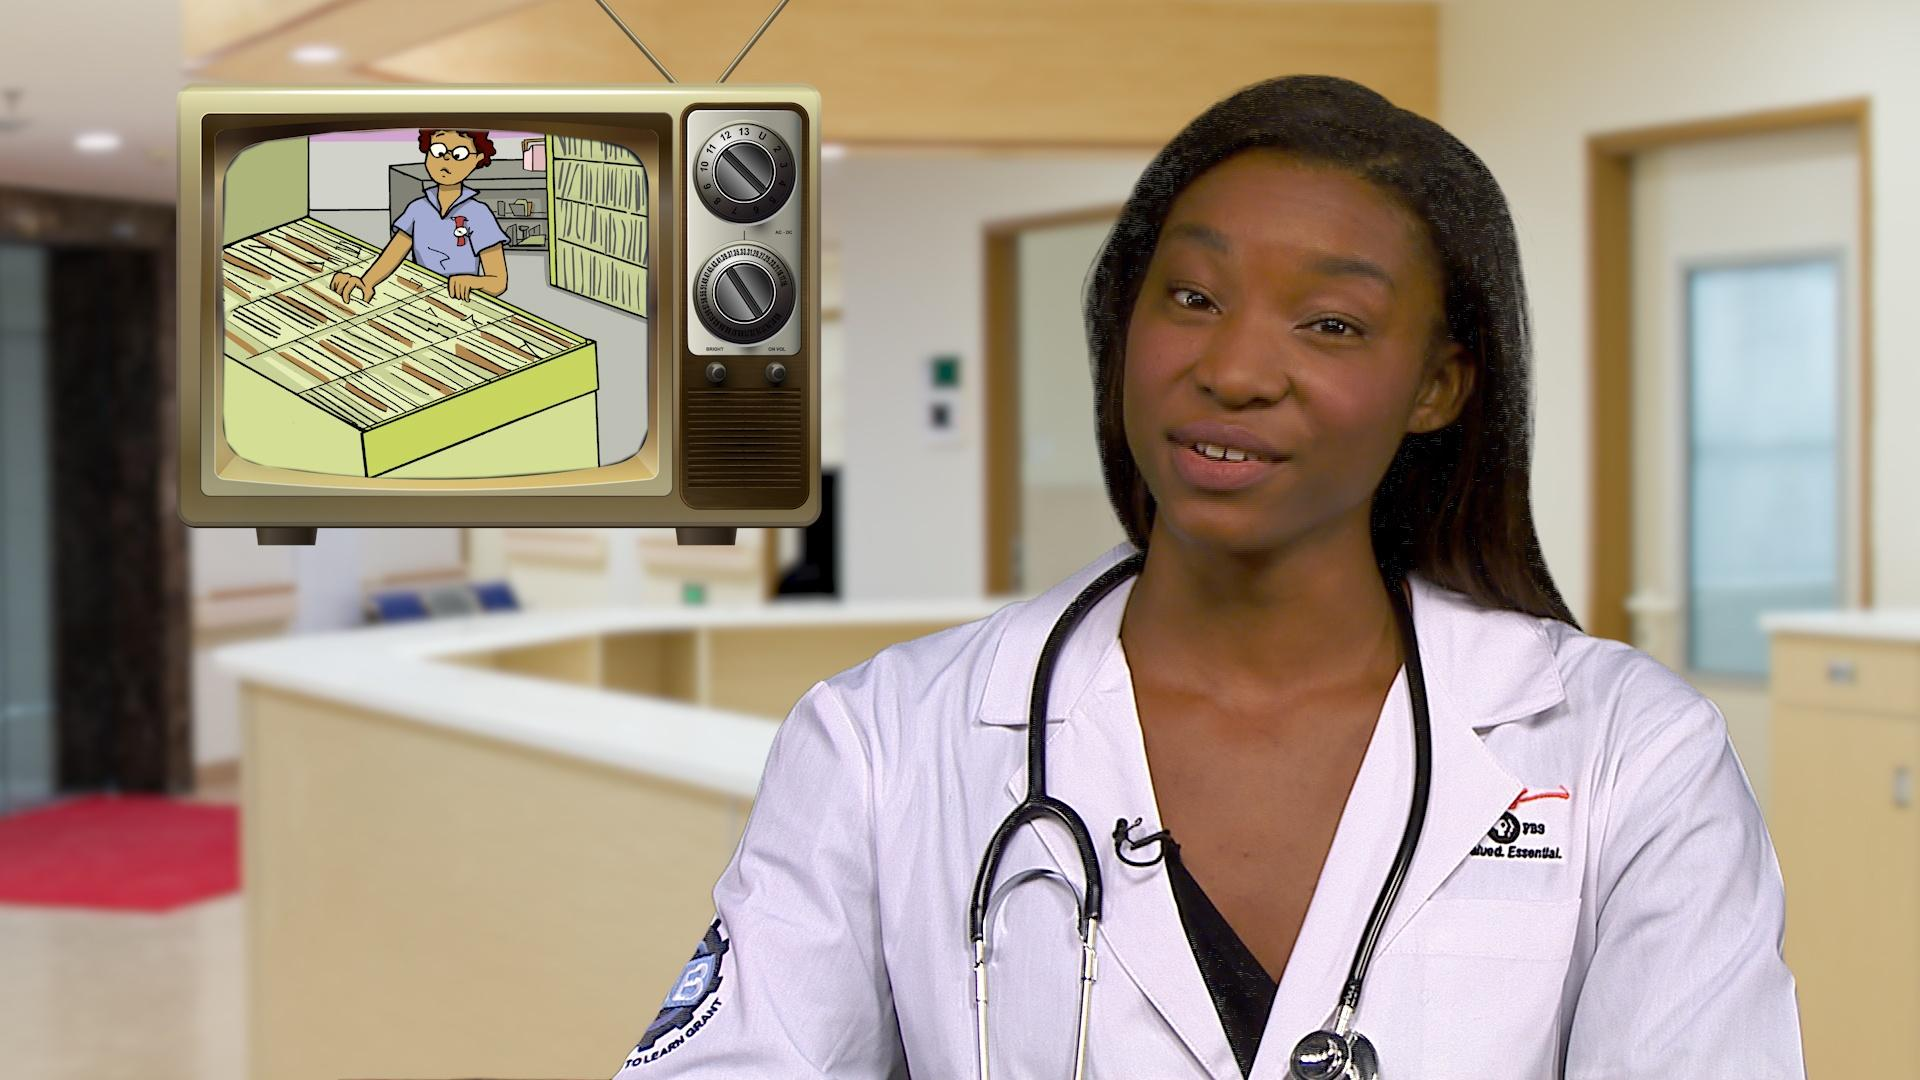 Career Pathway Video for Medical Assistant